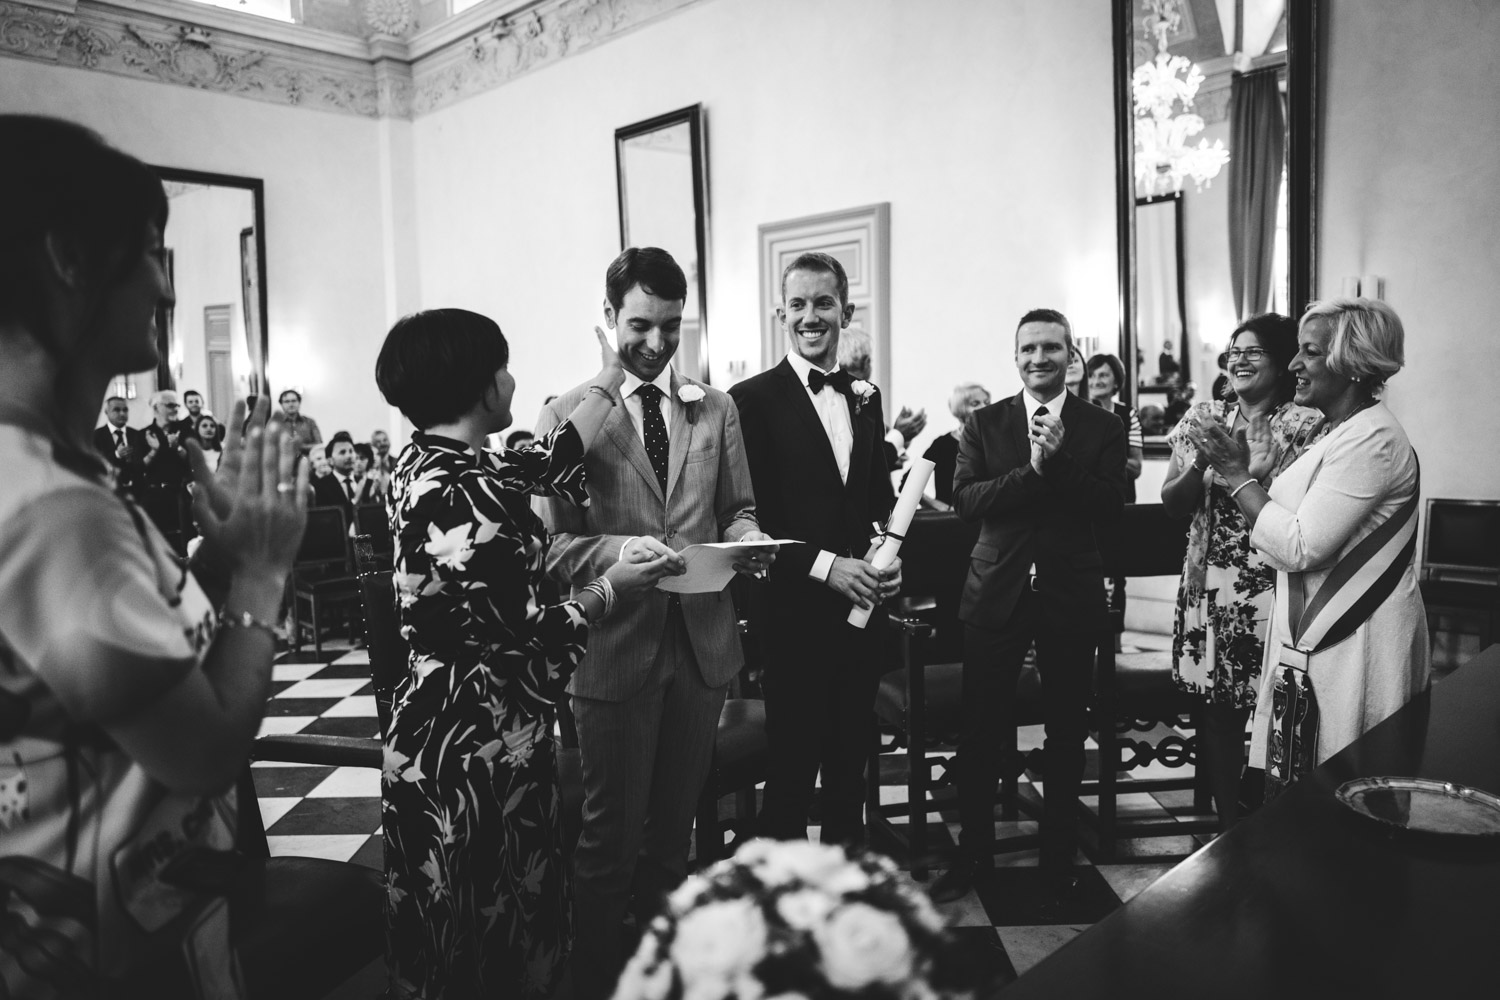 monica-sica_photography_trattoria-revelli_wedding-gay_torino_day_27